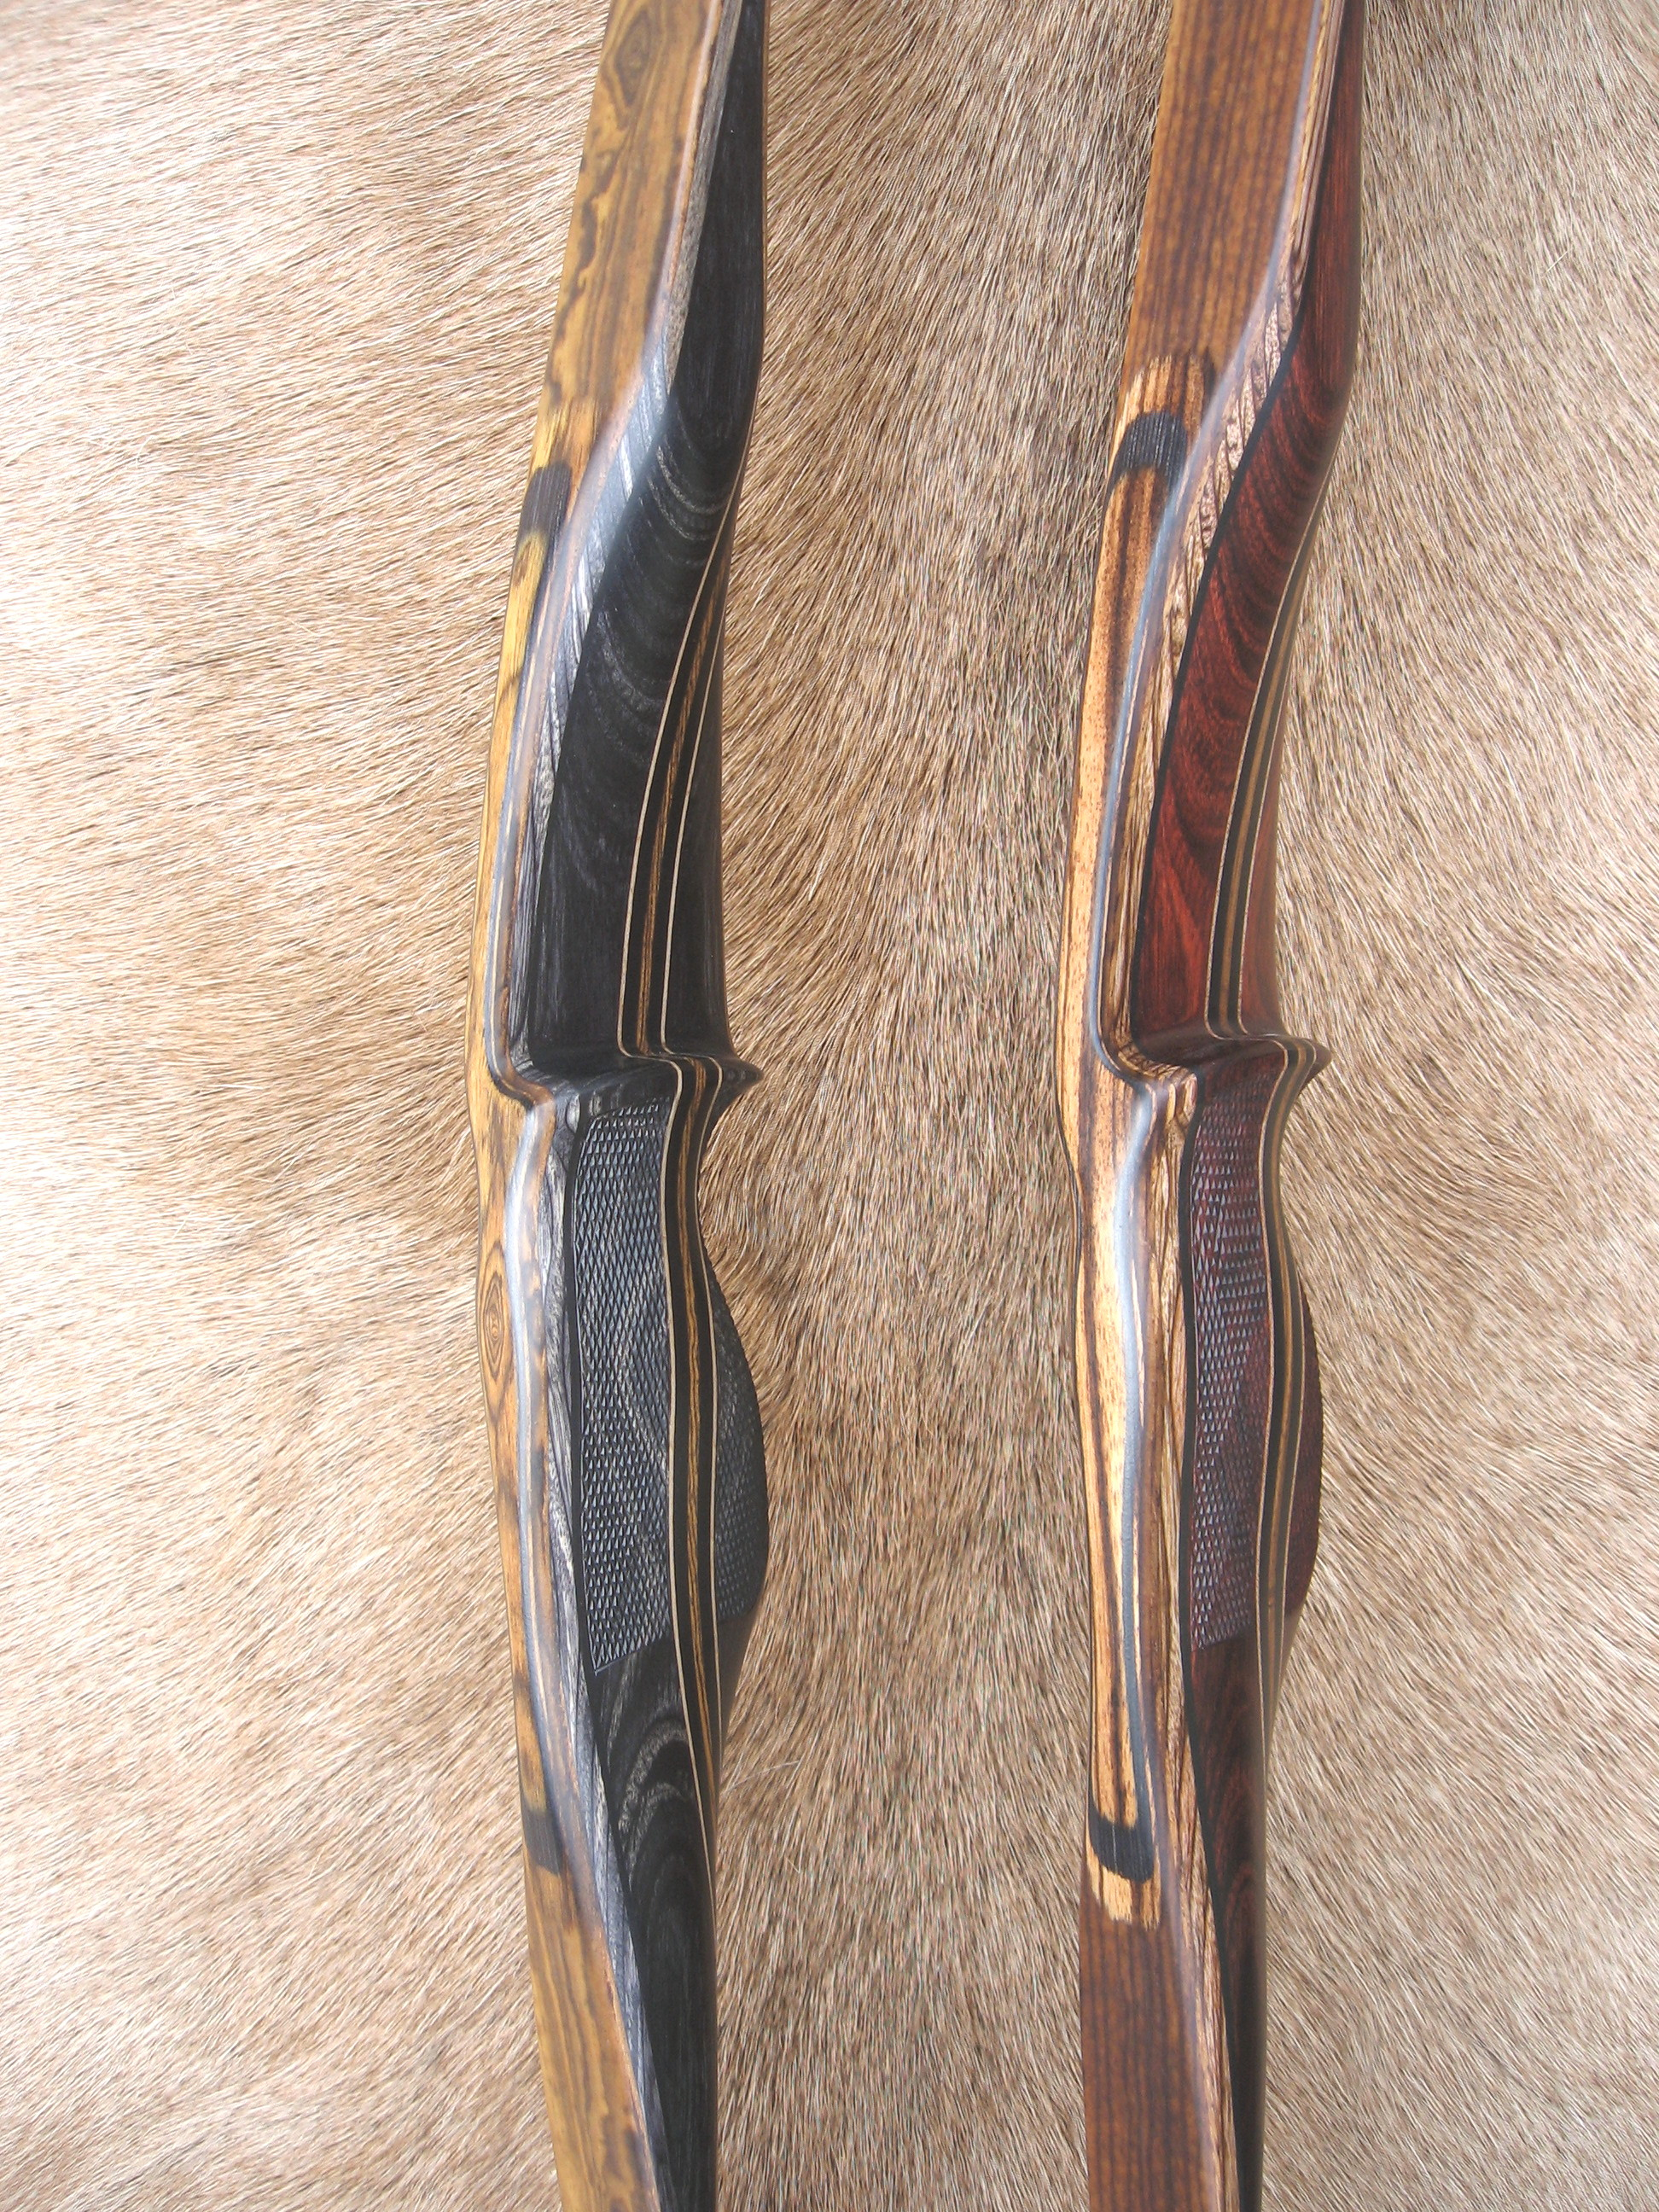 Charcoal Dym Riser- left  Rosewood Dym Riser- right